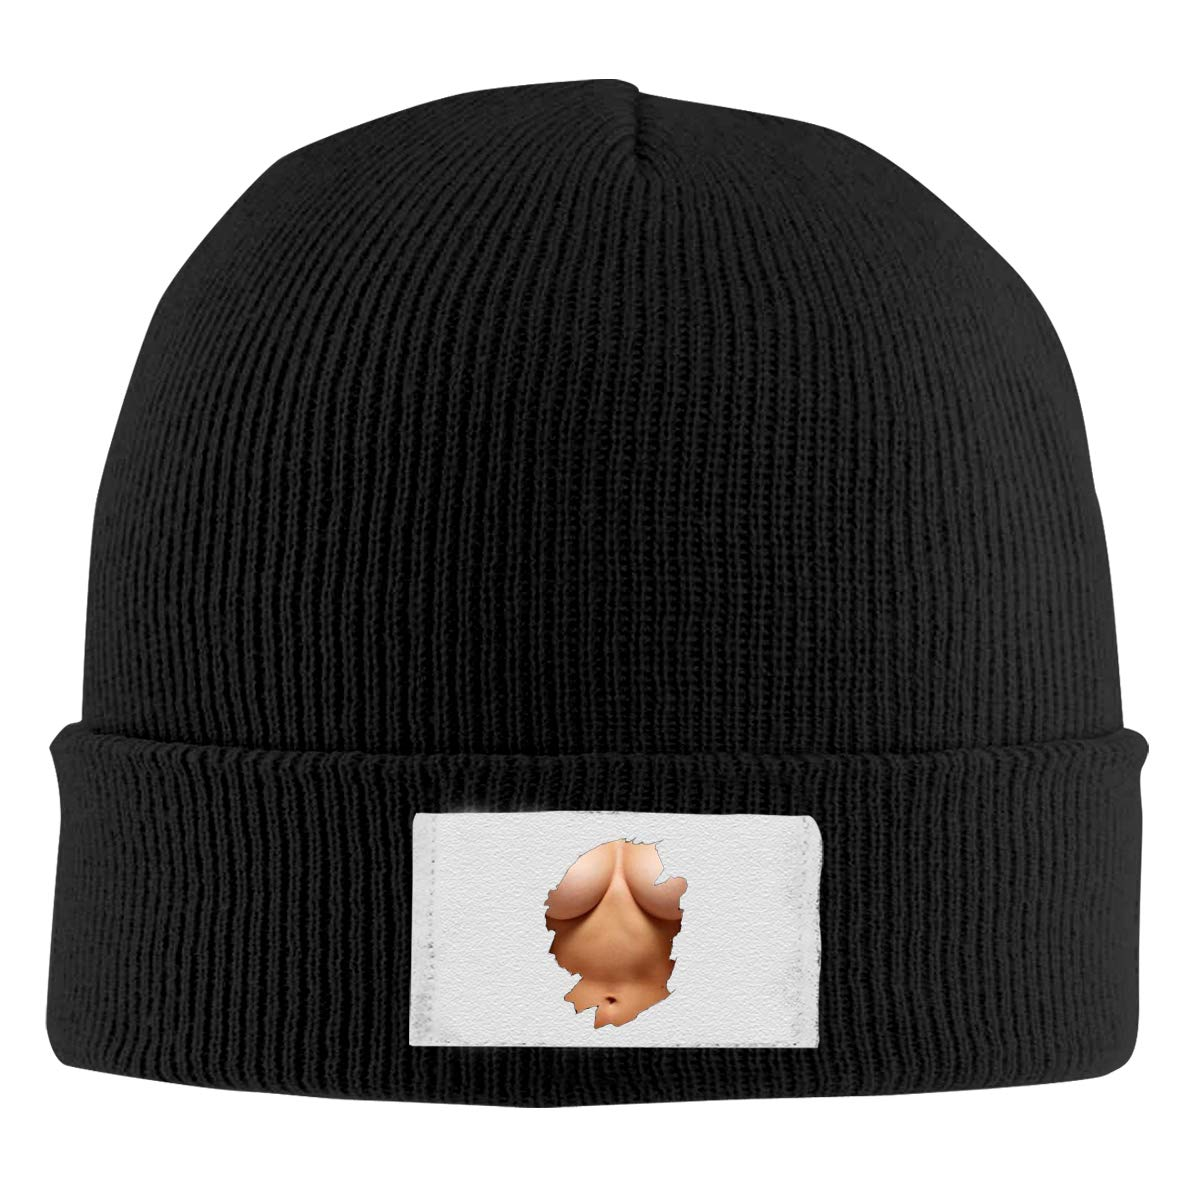 Unisex Stylish Slouch Beanie Hats Black in Flames Top Level Beanie Men Women